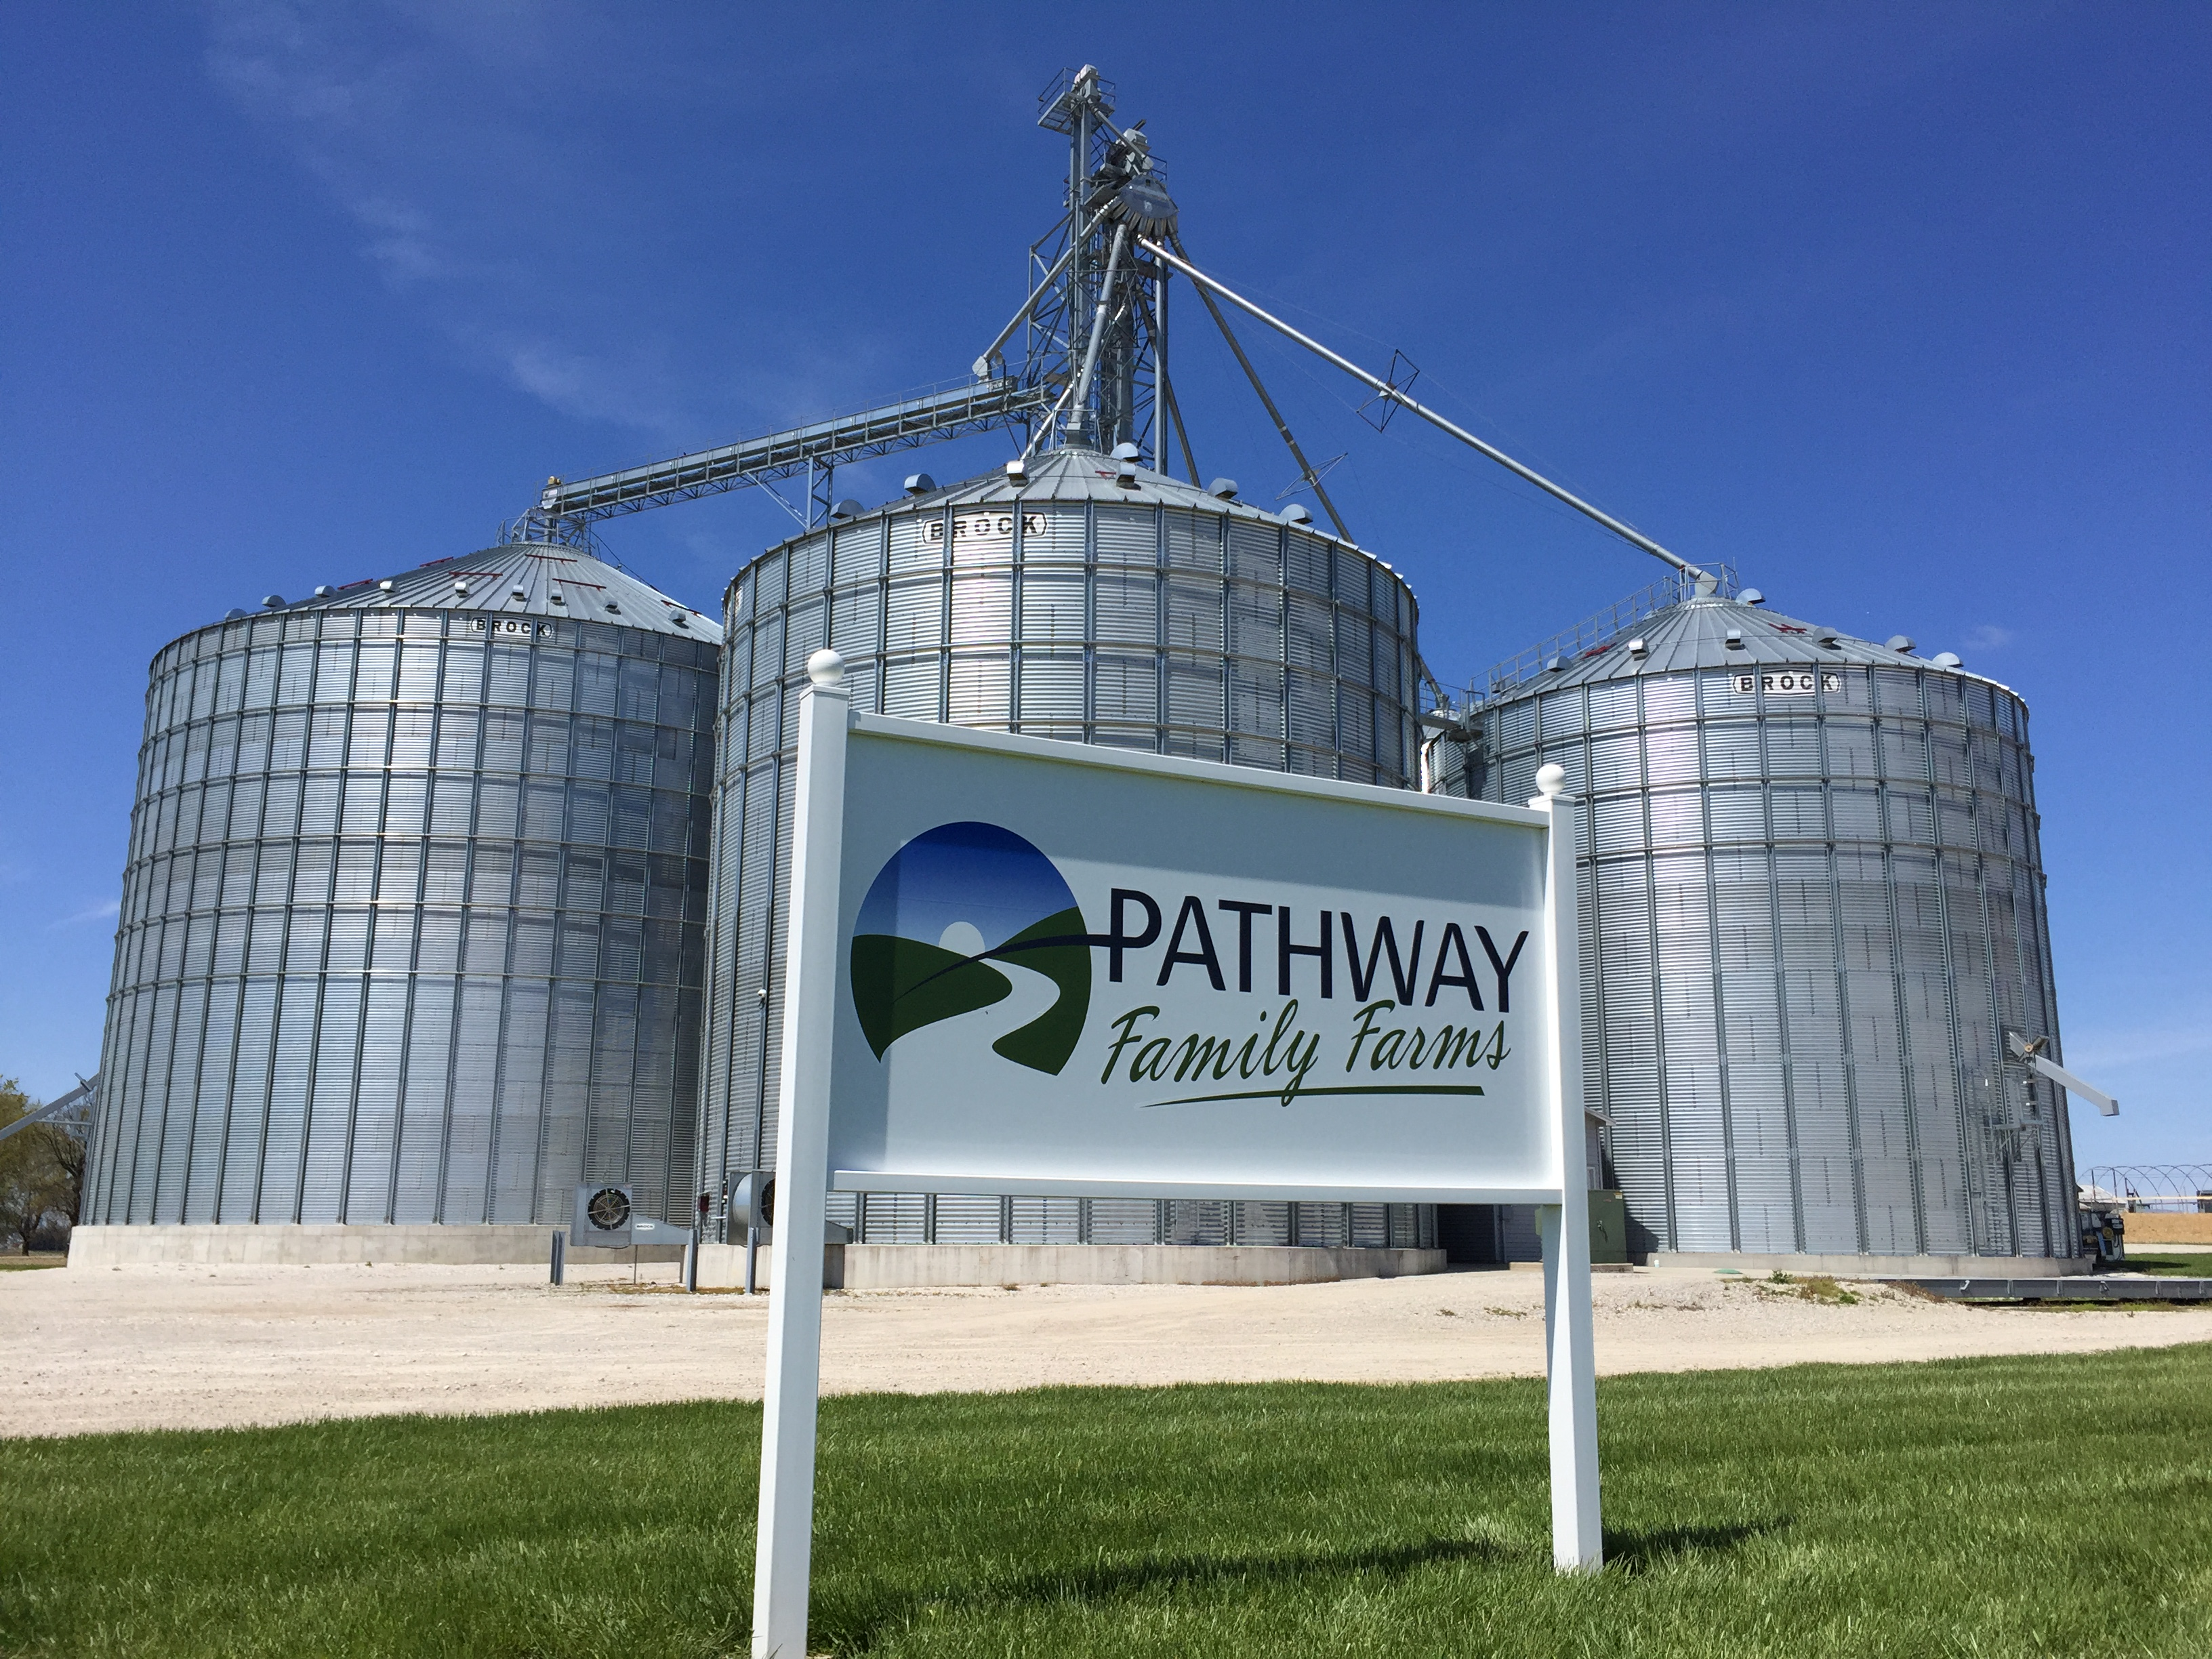 Pathway Family Farms Grain Bins